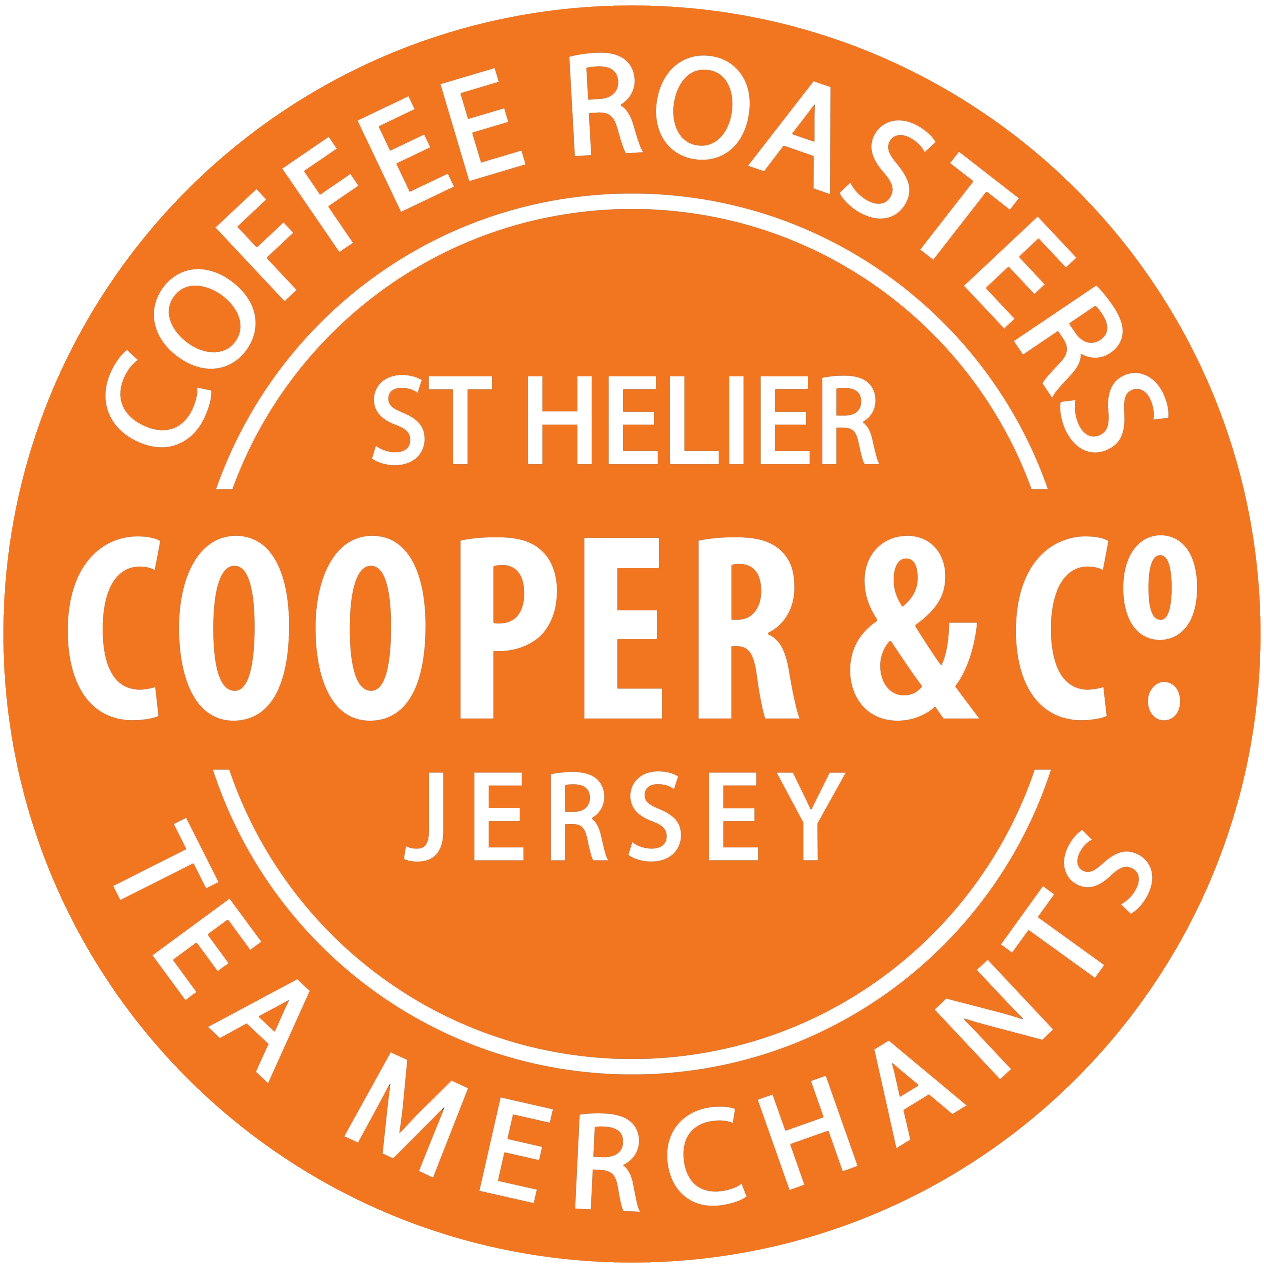 Cooper & Co. Jersey